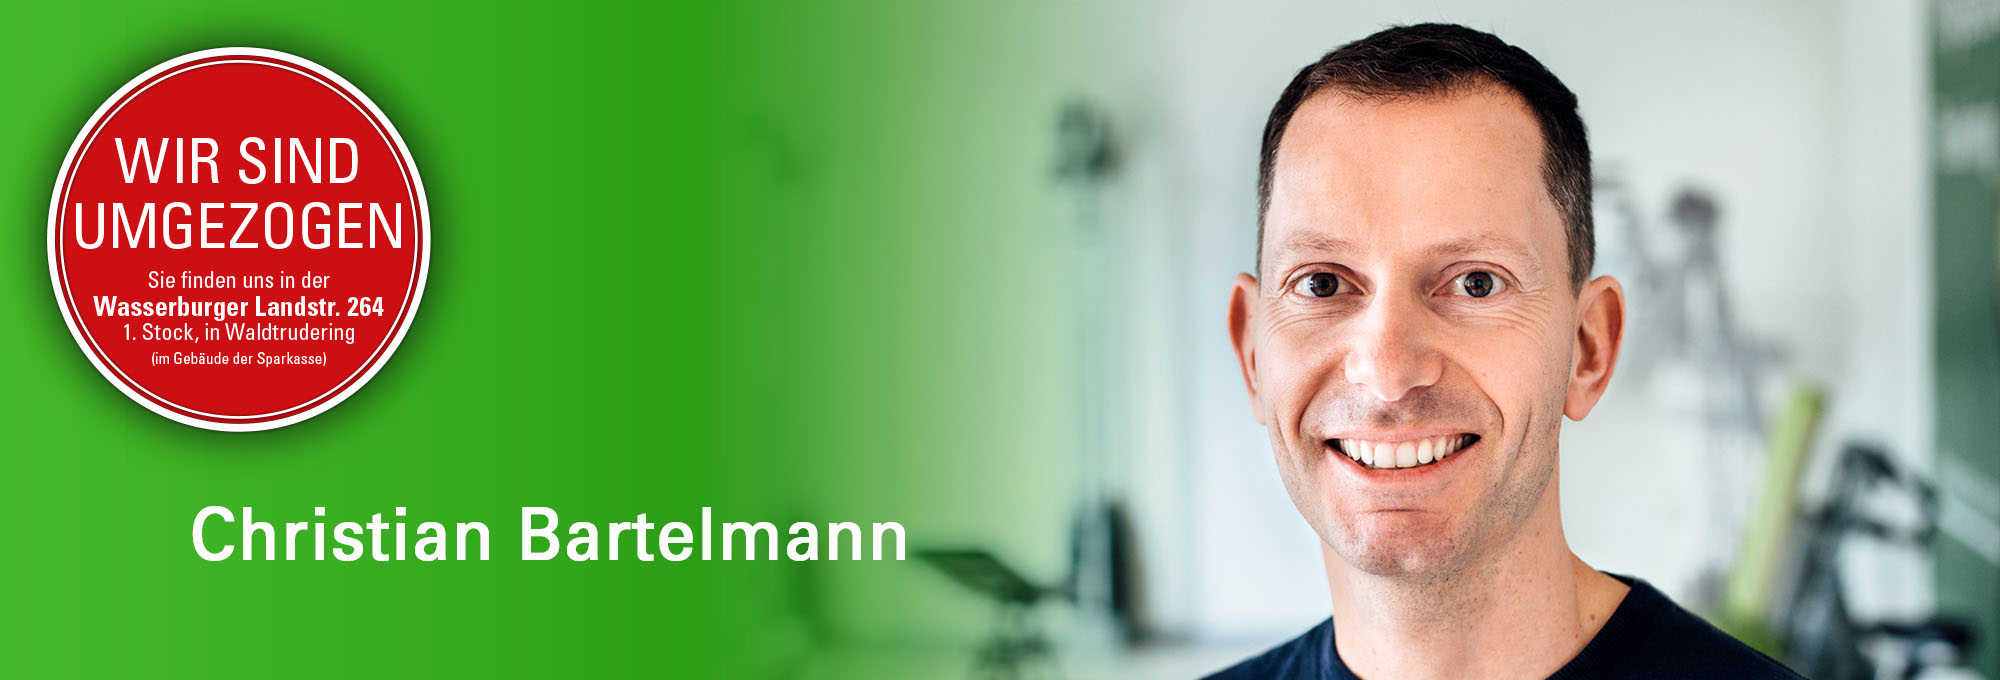 Physiotherapeut Christian Bartelmann - Inh. Physiotherapie Trudering